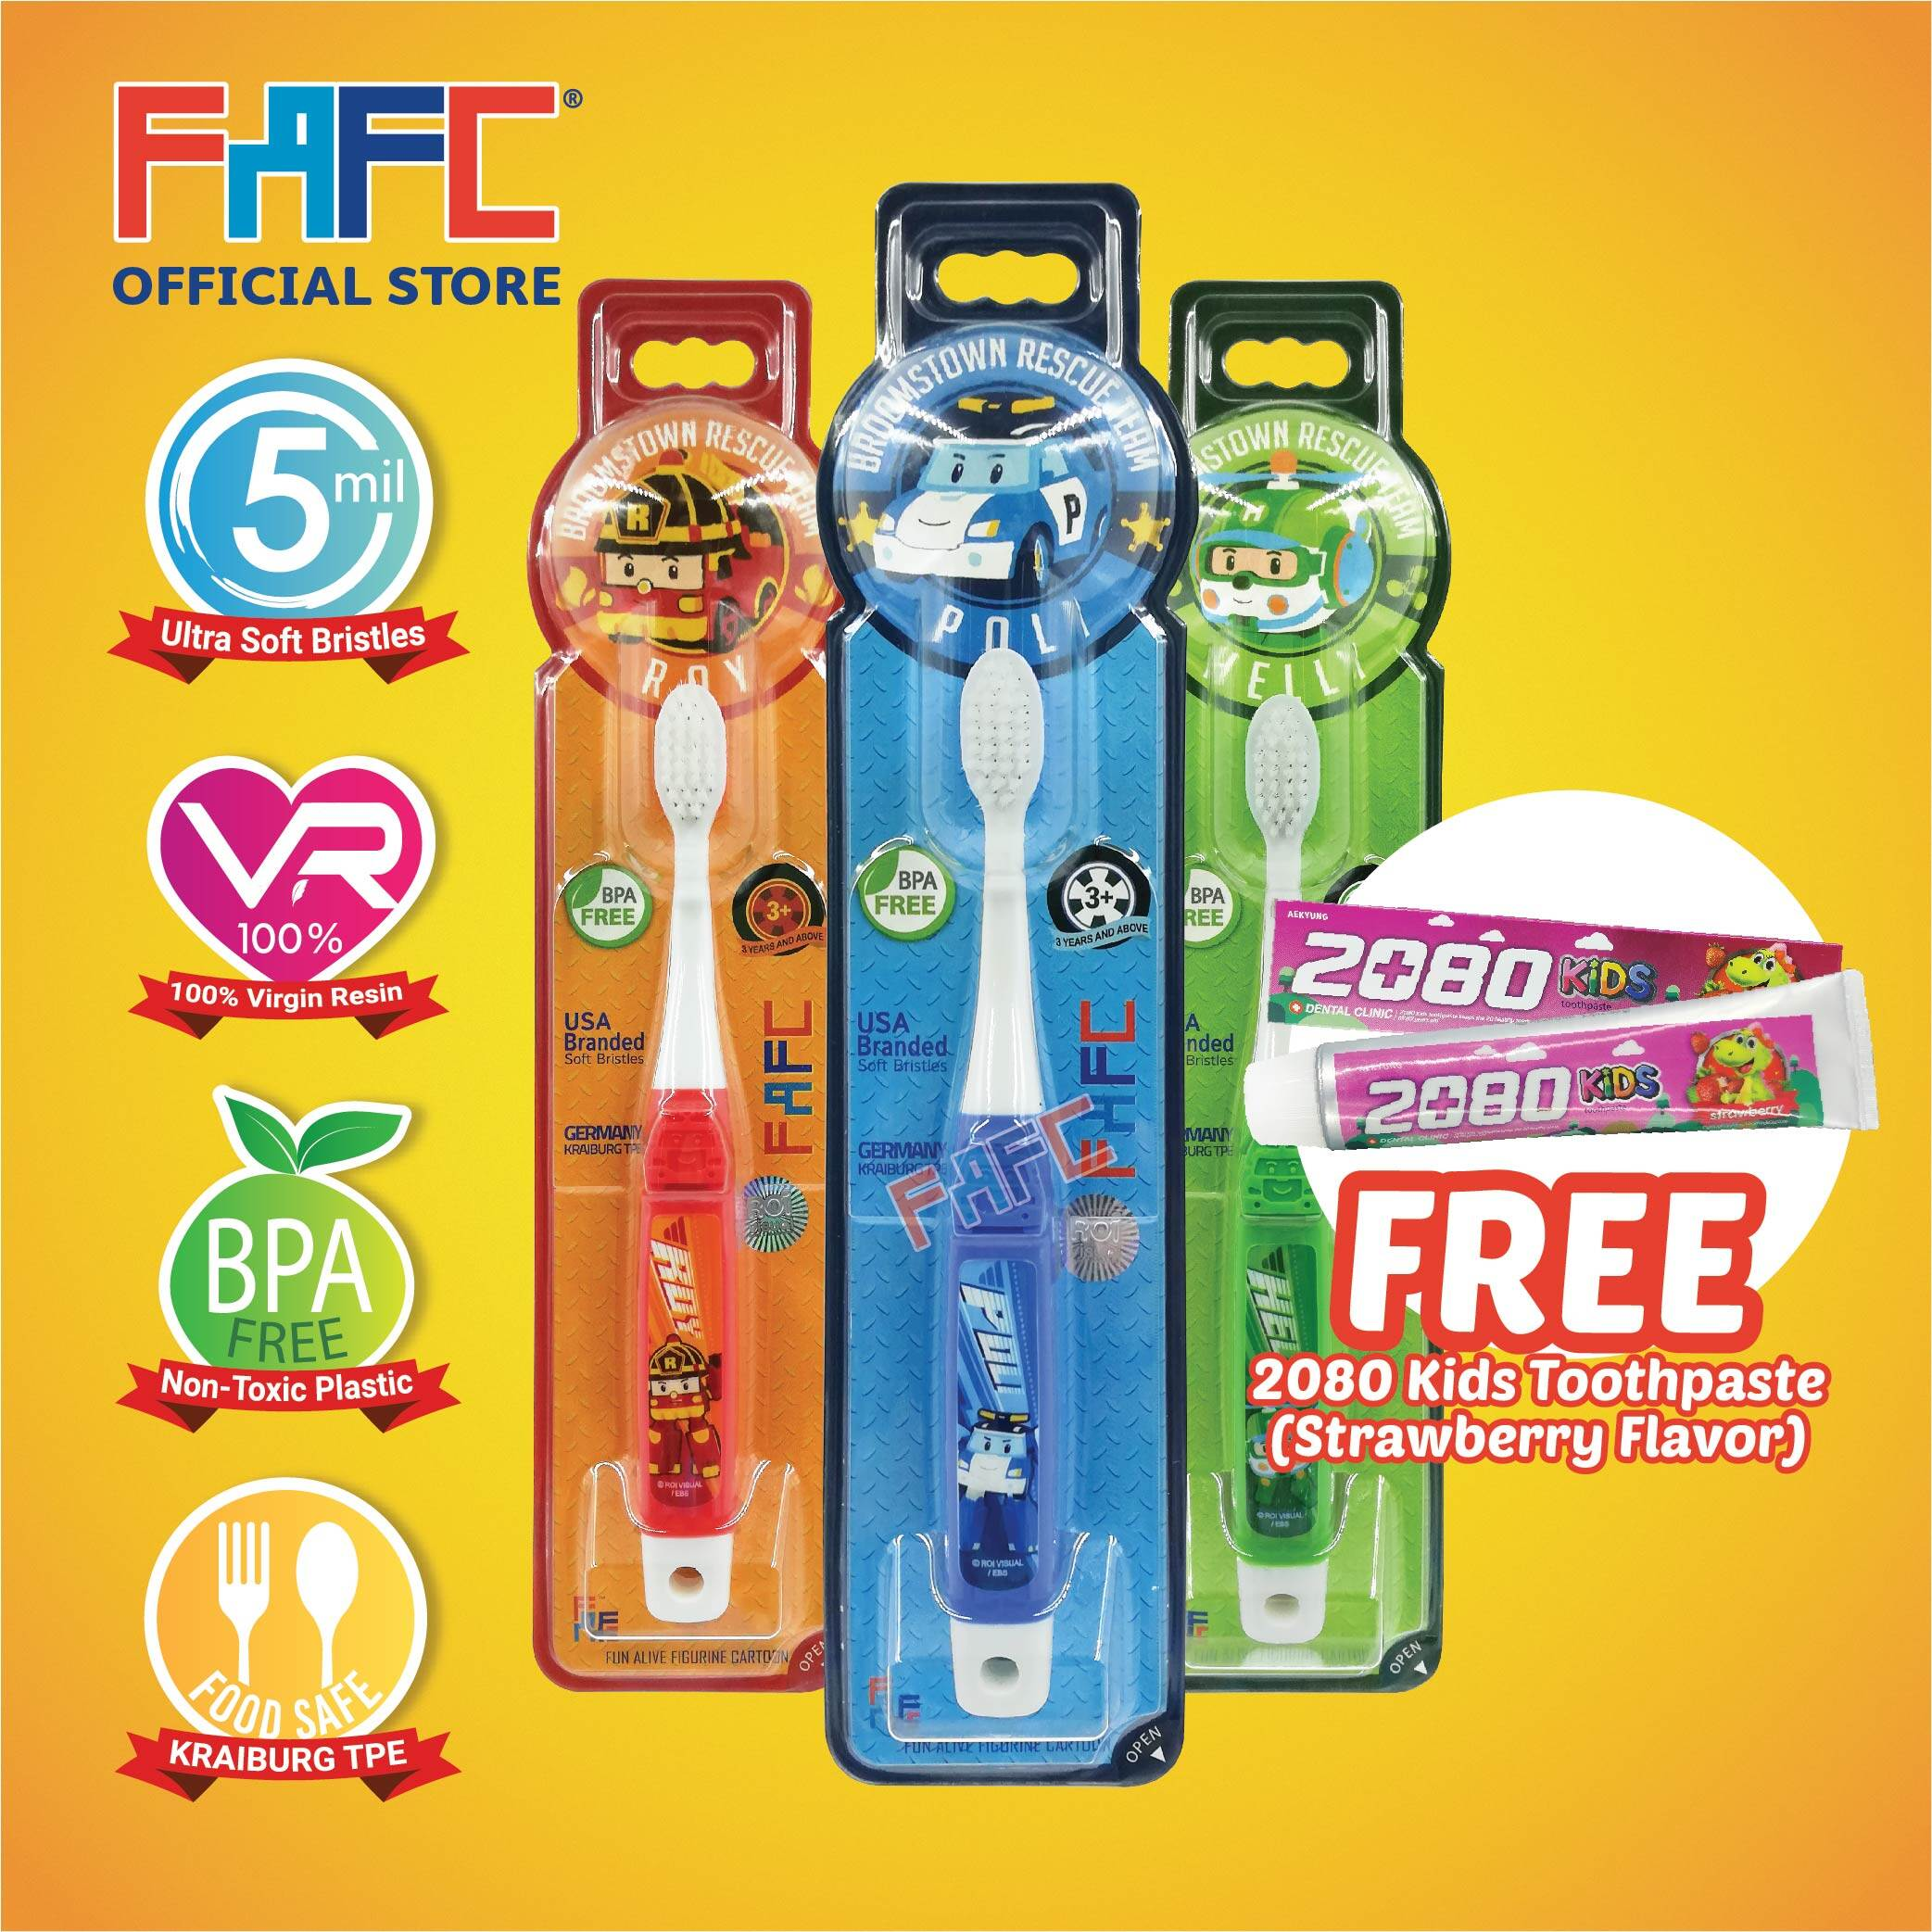 POLI ROY HELLY - (3 Pcs) FAFC Robocar Poli Hook Kids Toothbrush FREE 2080 Kids Toothpaste (Strawberry Flavor)